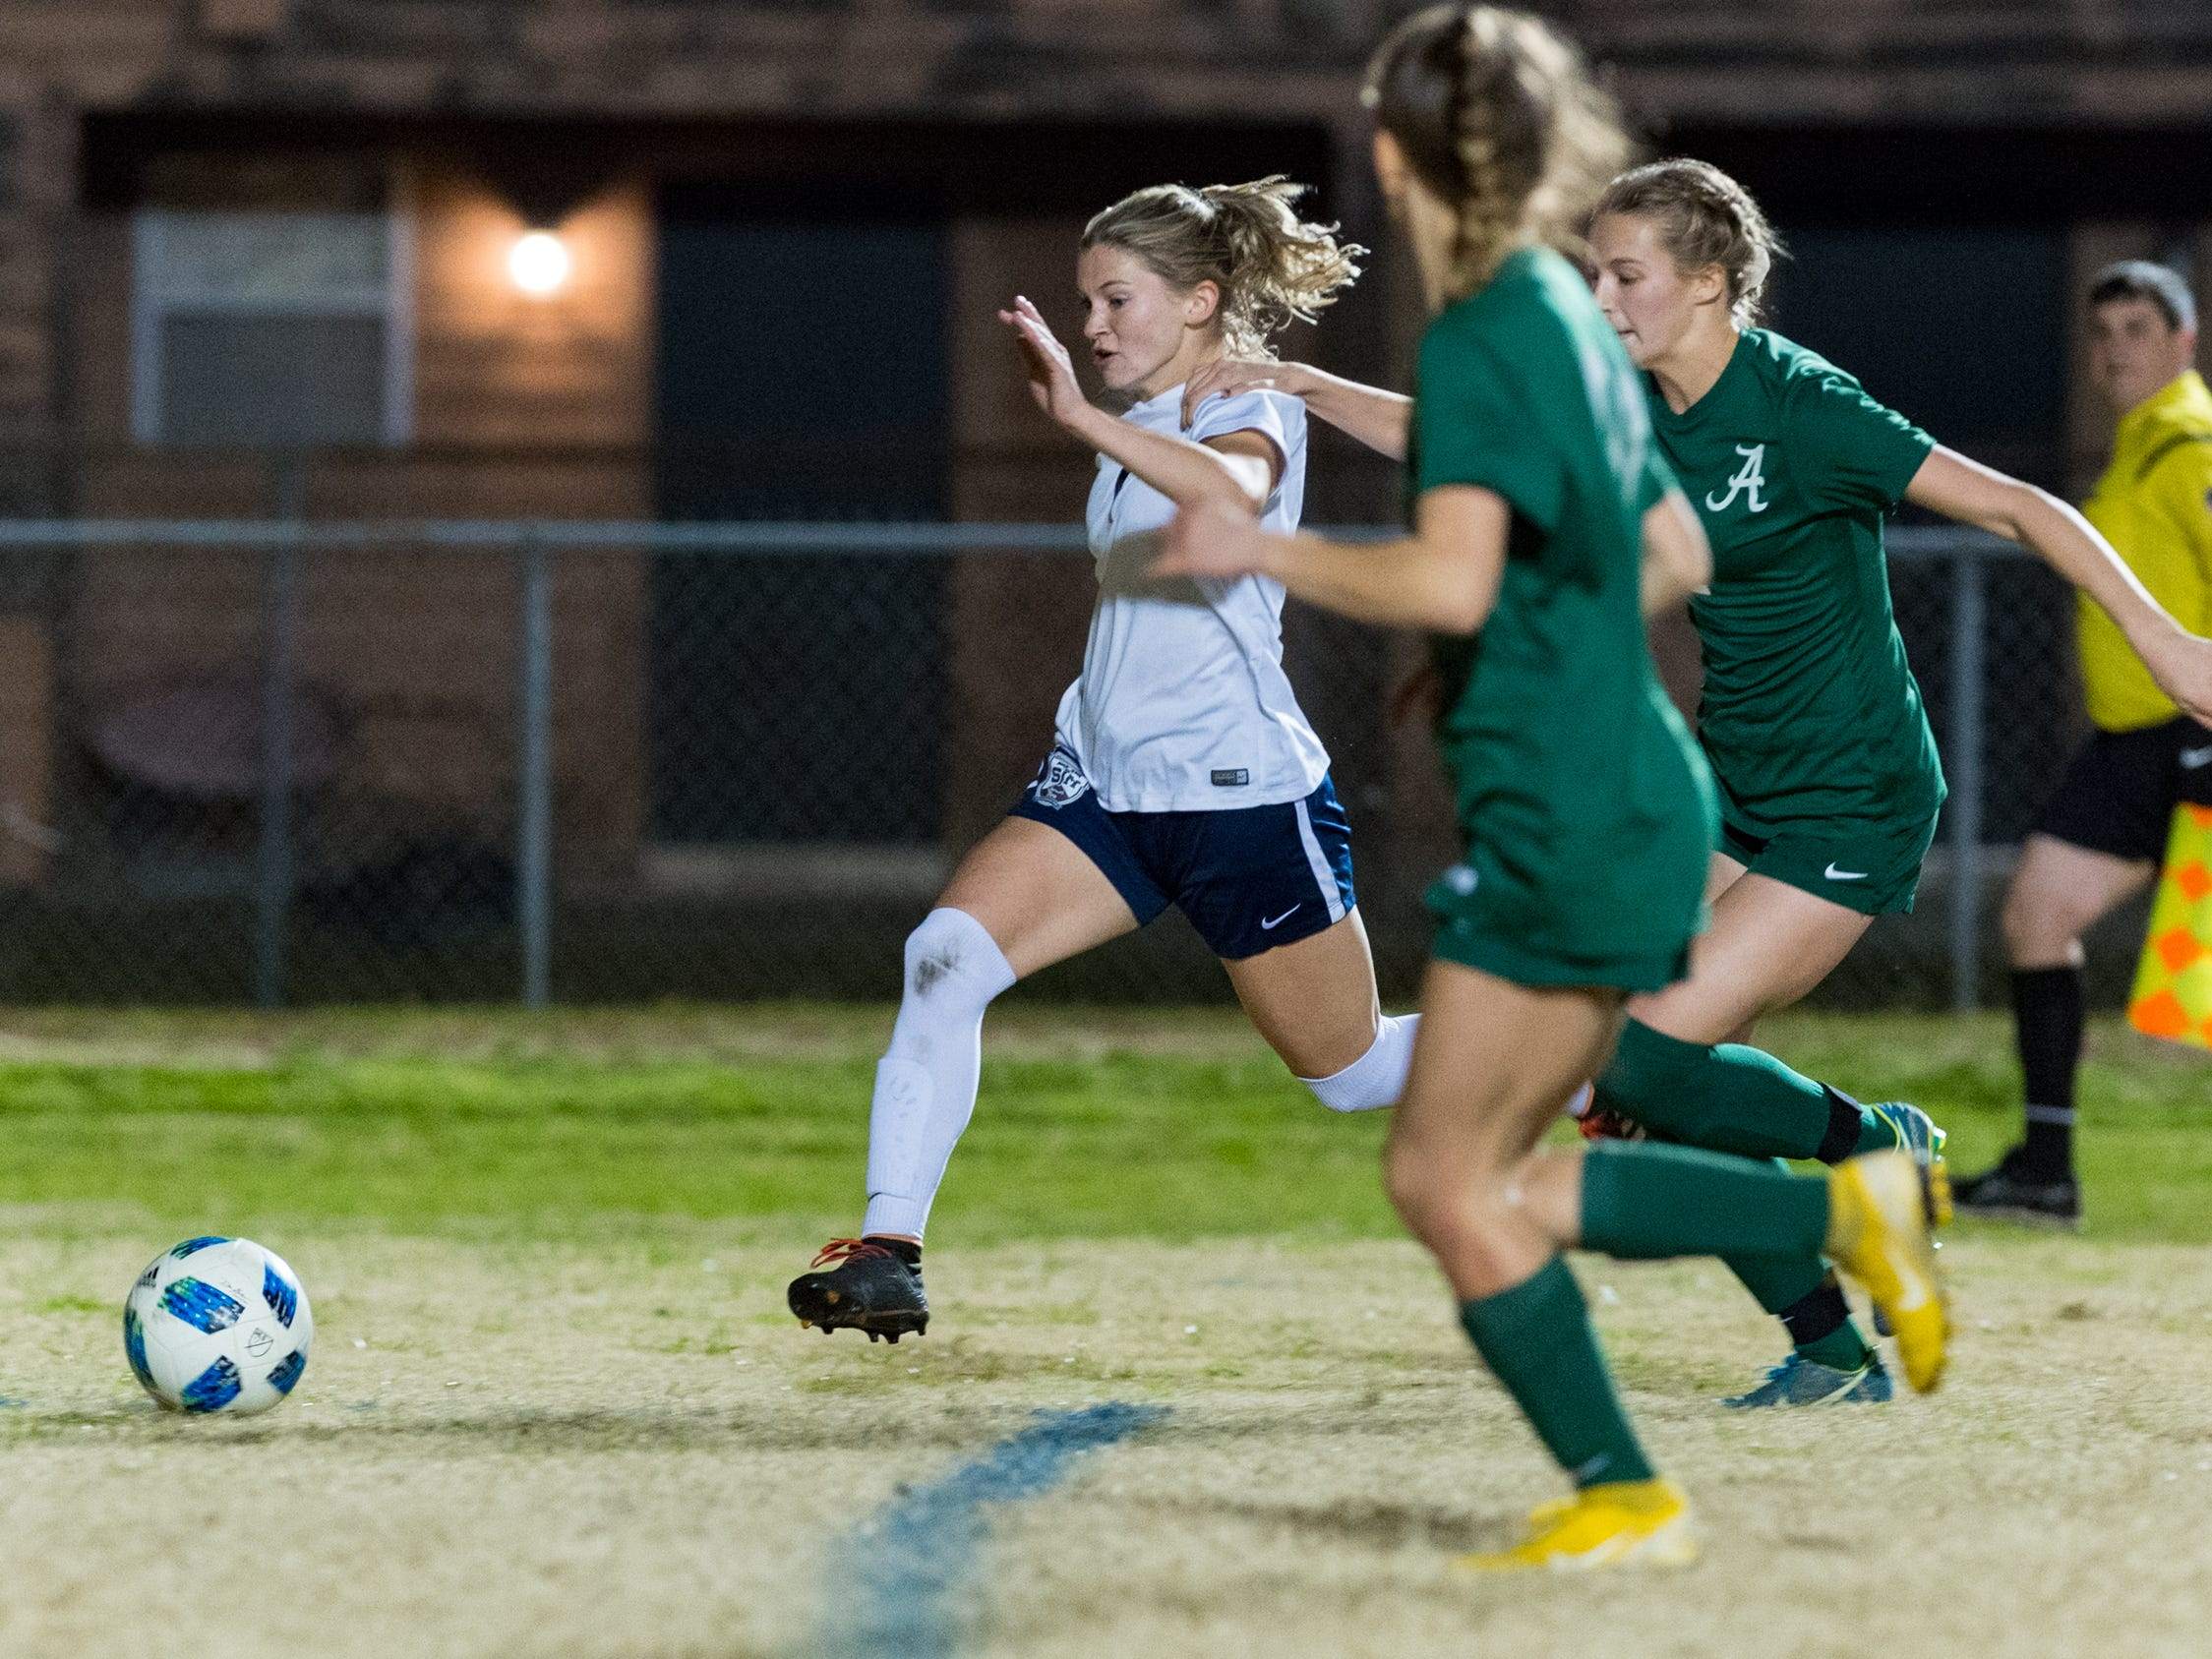 Maddie Moreau drives the ball to the goal as Acadiana takes on STM girls soccer. Monday, Jan. 28, 2019.